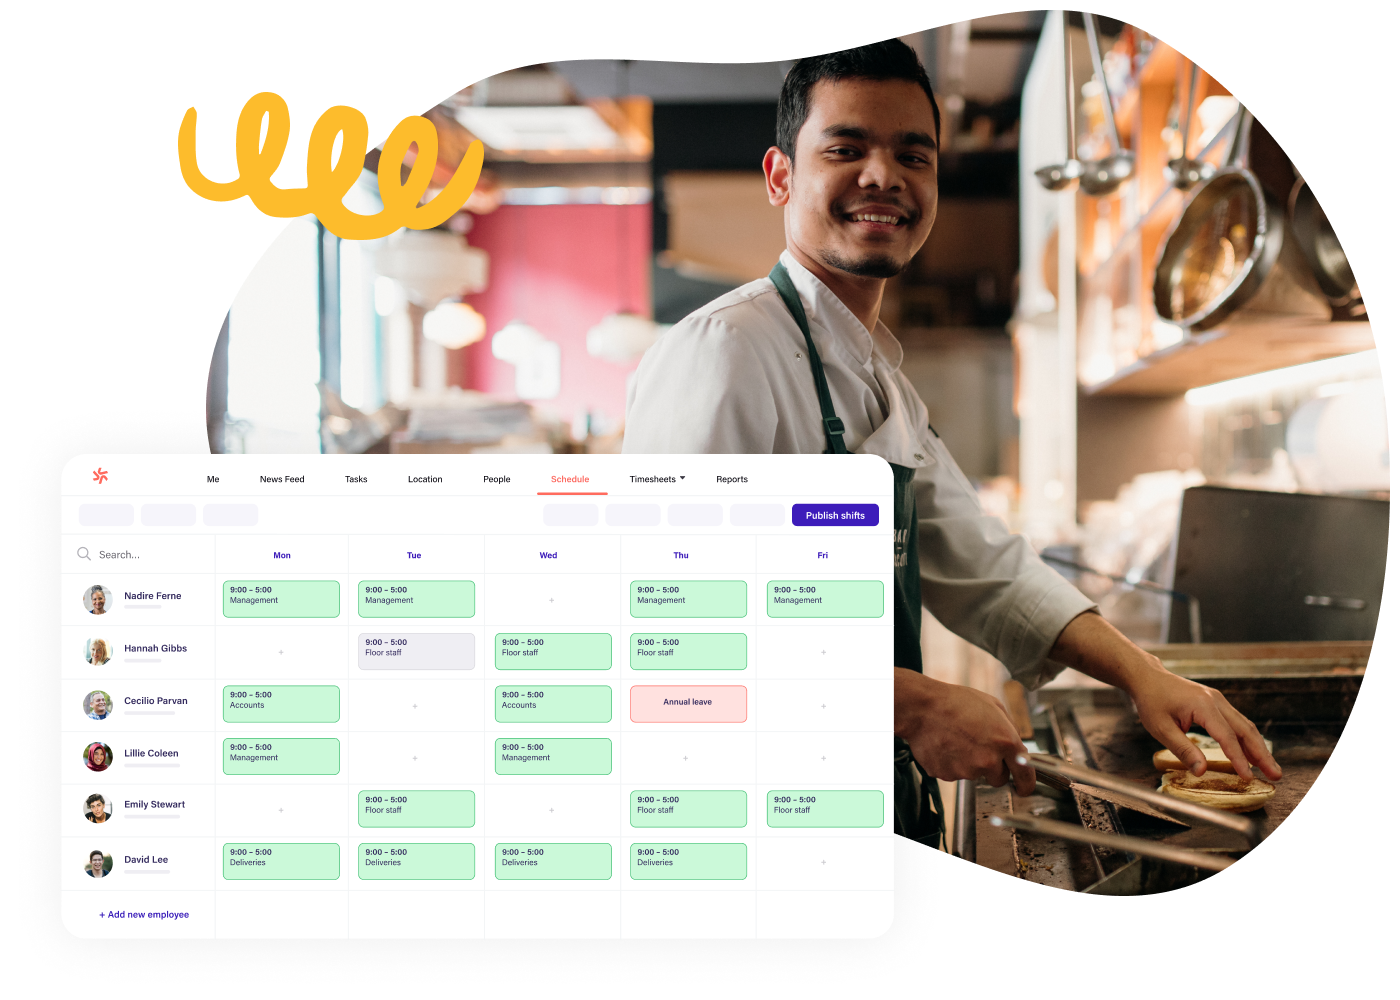 Scheduling software for hospitality teams